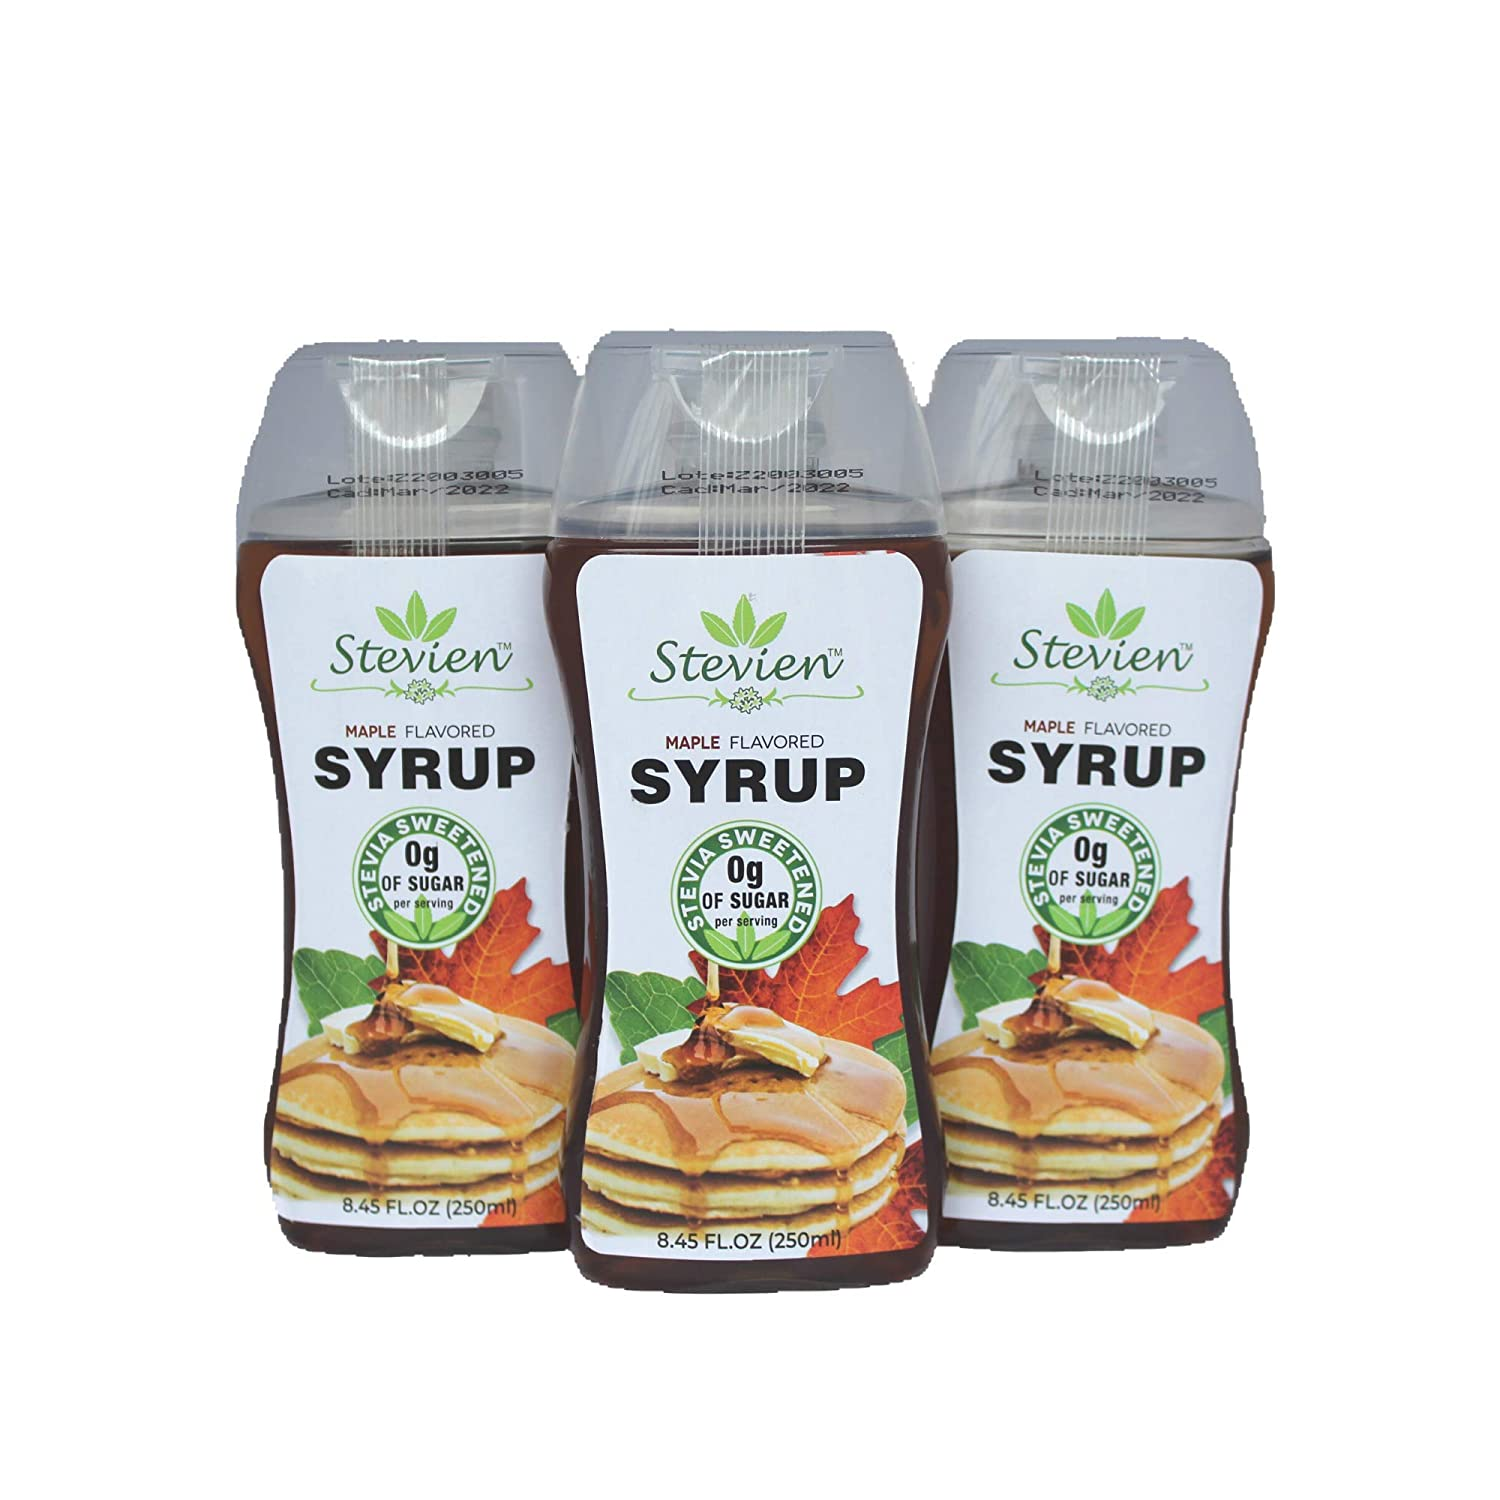 Stevien Keto Sugar Free Maple Syrup - Vegan - Low Carb - Gluten Free - Low Calorie - Sweetened with Organic Stevia (3)